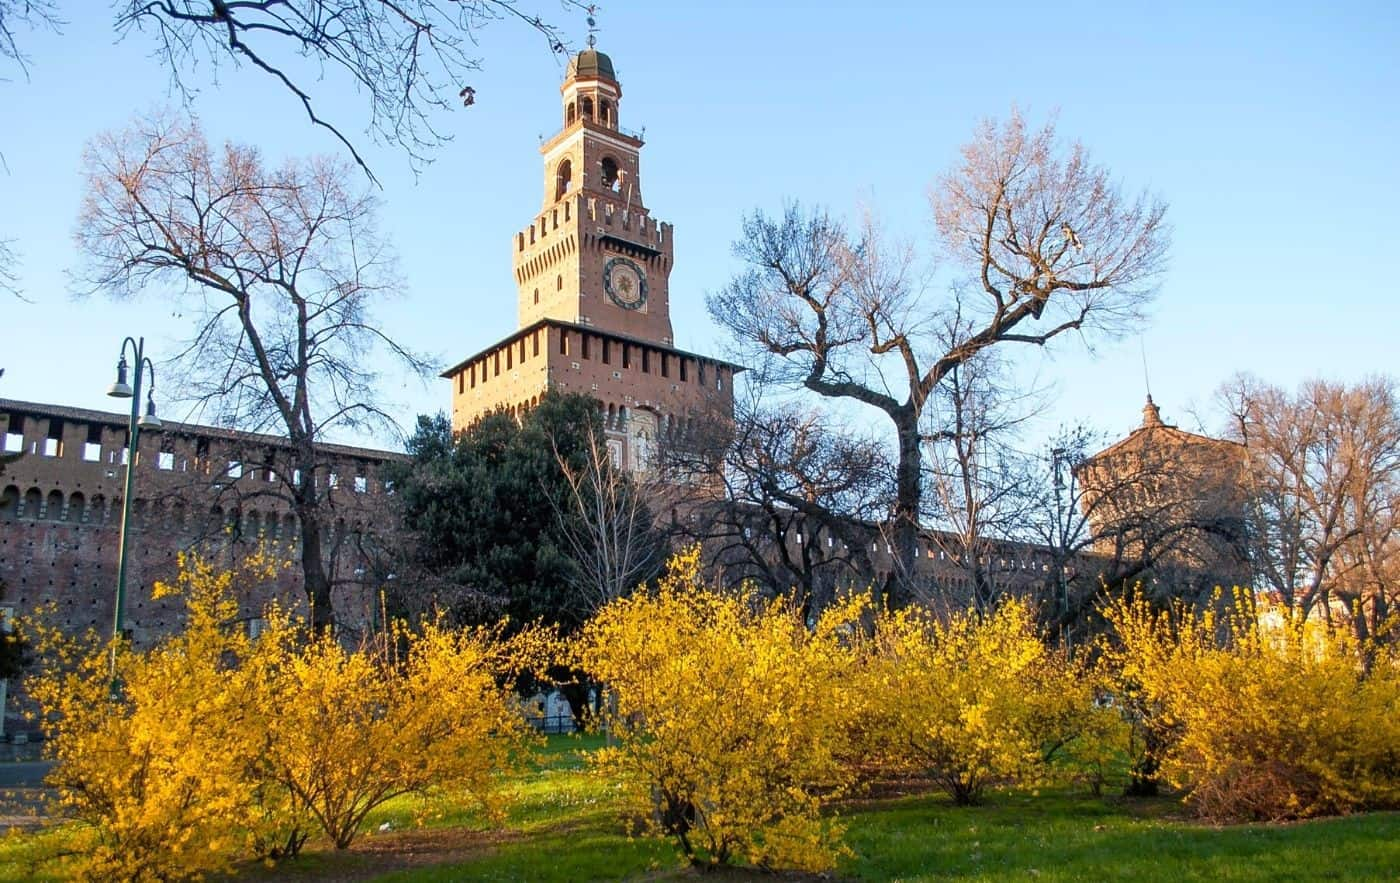 Stunning exterior of Sforza Castle in the evening.